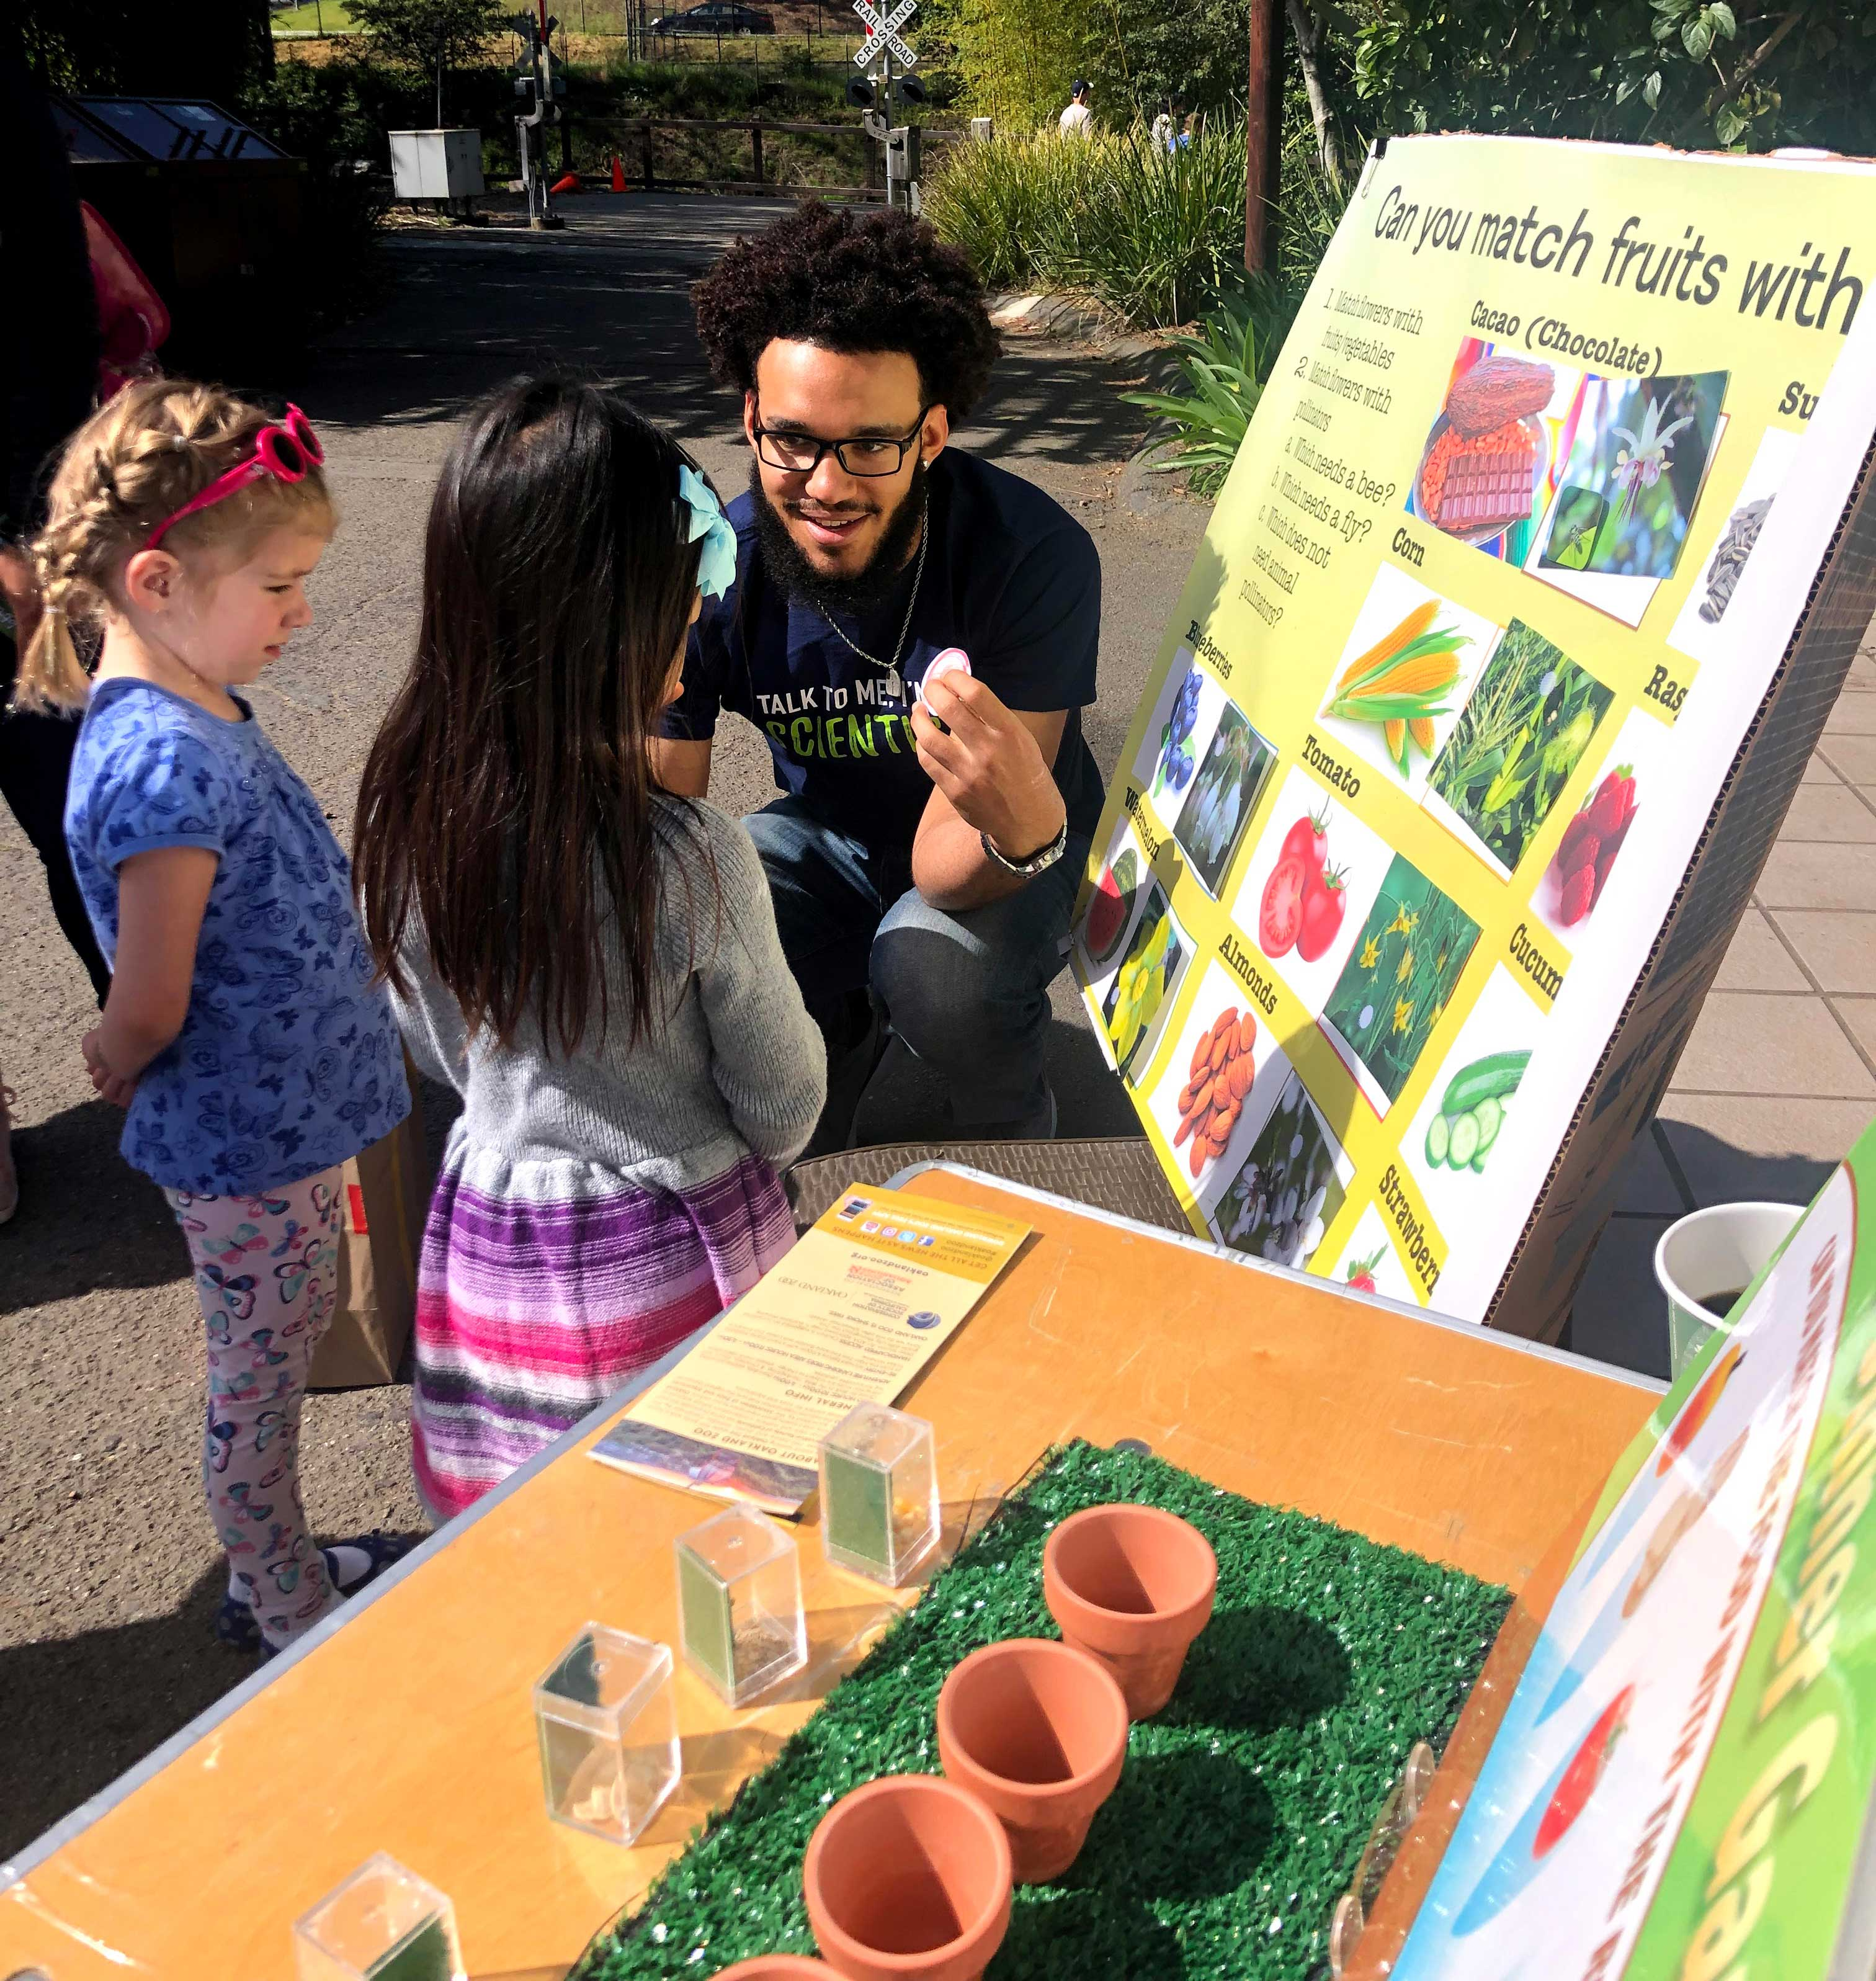 A man teaching young children about fruits in an outdoor setting